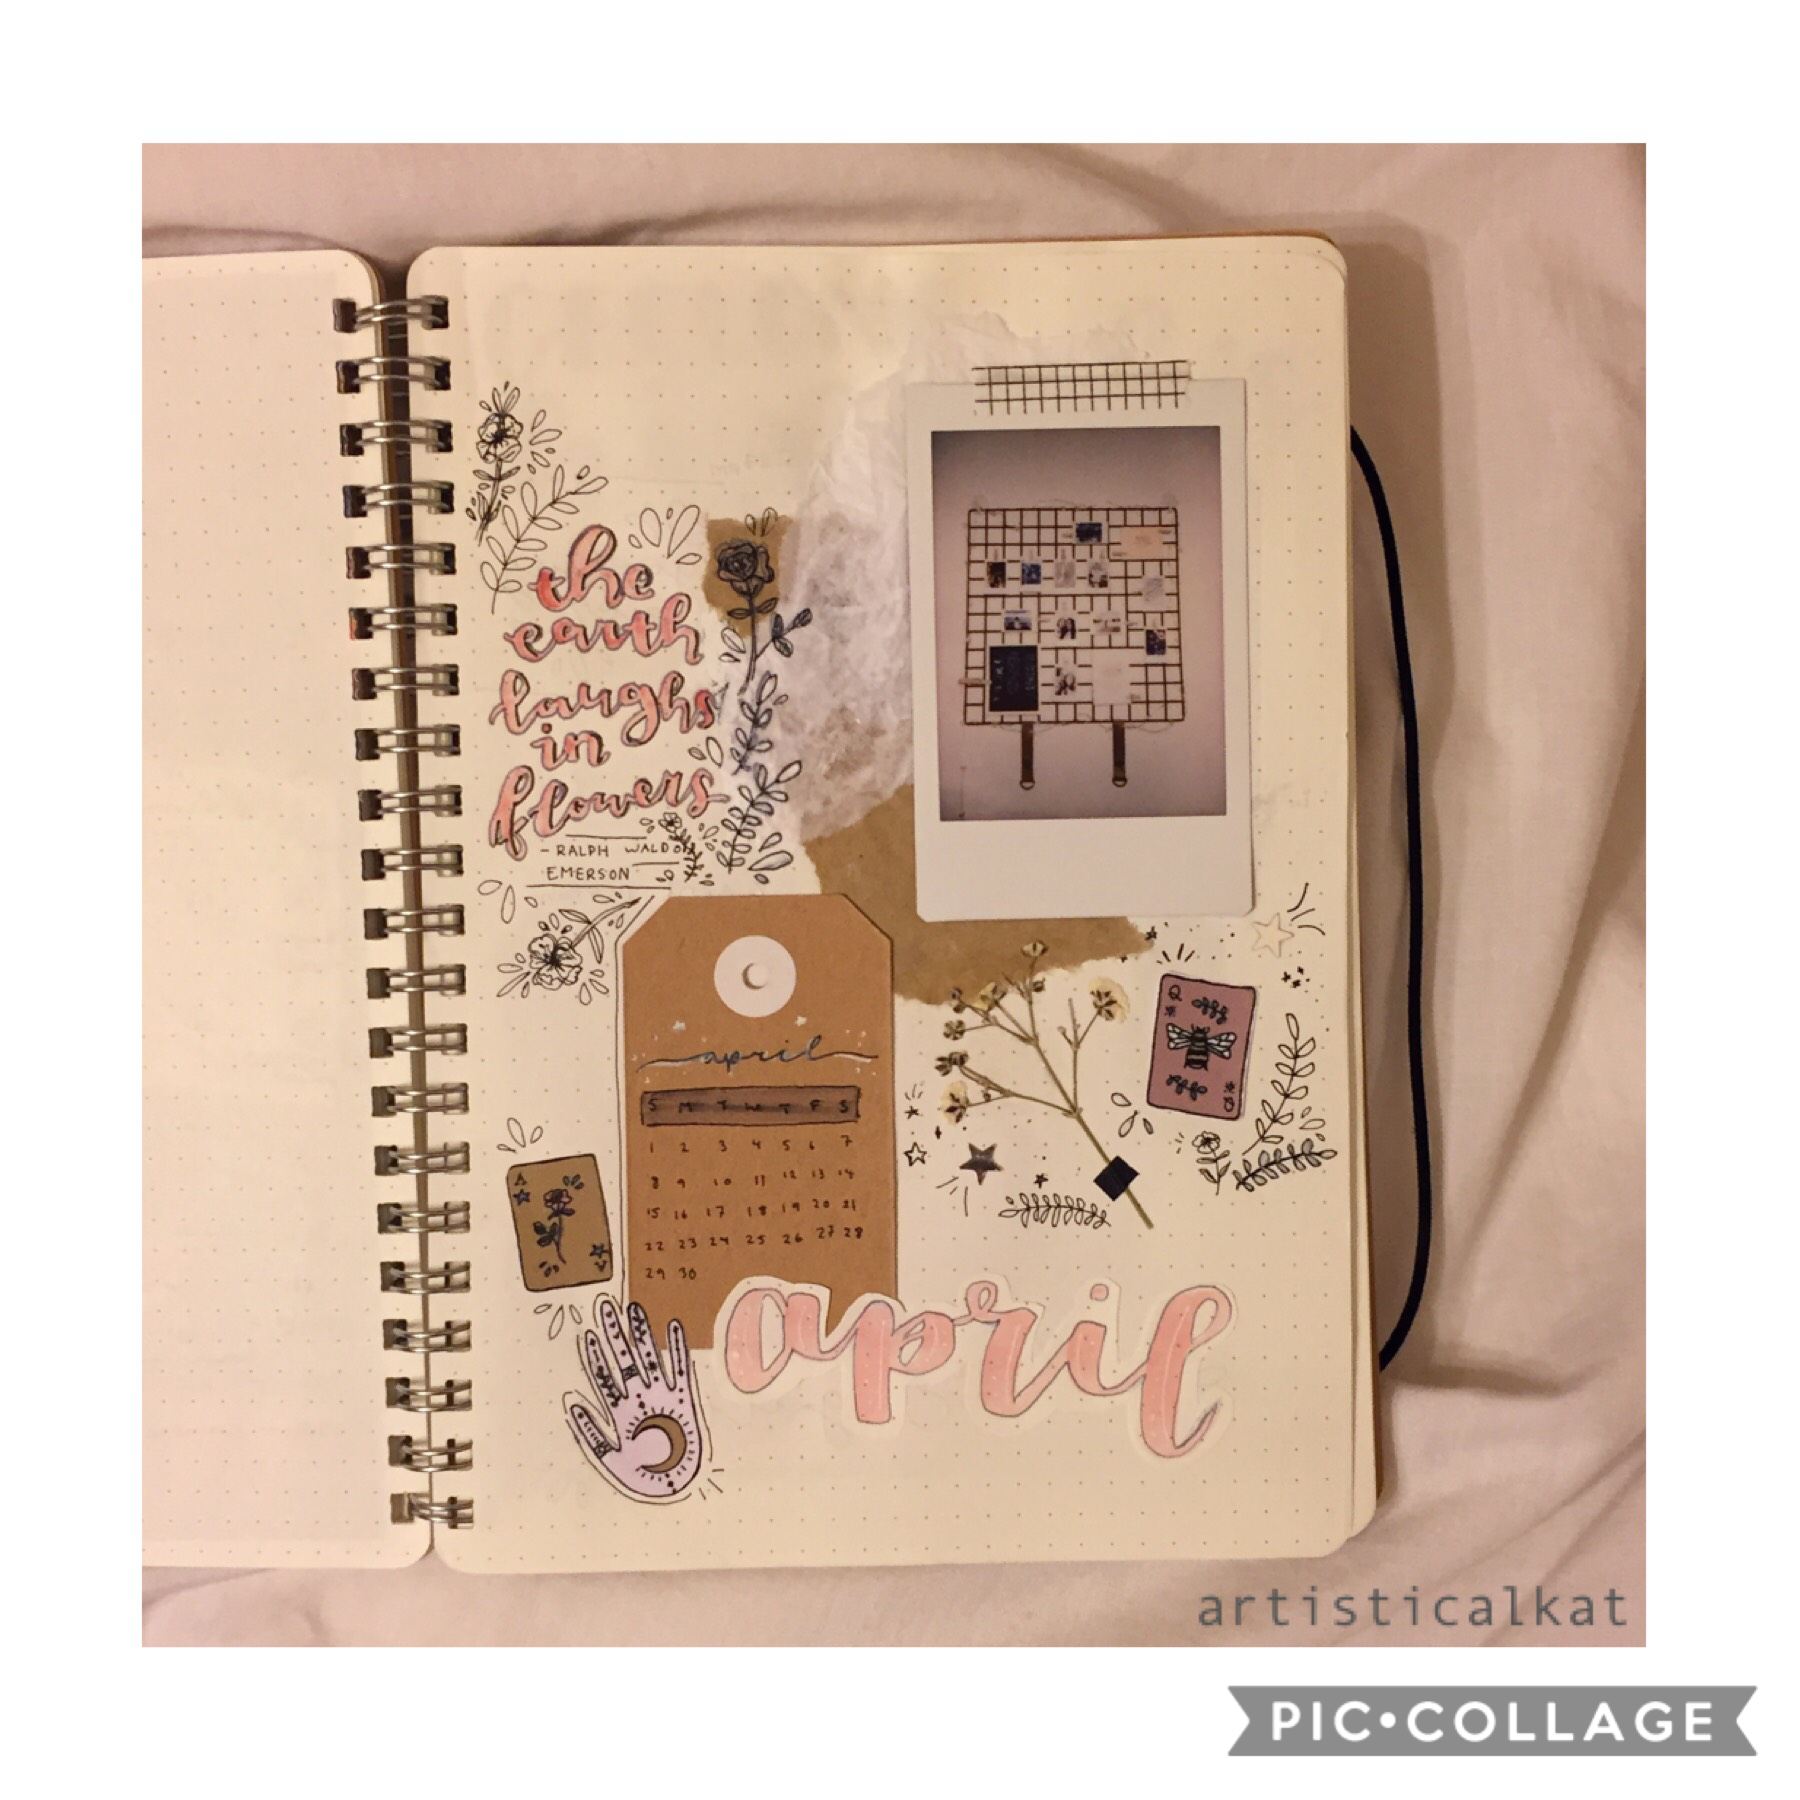 28•06•18 | 🌼 April cover spread 🌻 | on the train 🚂 |   and yes, I know I know it's not April anymore 🙈✨ | xx Kat